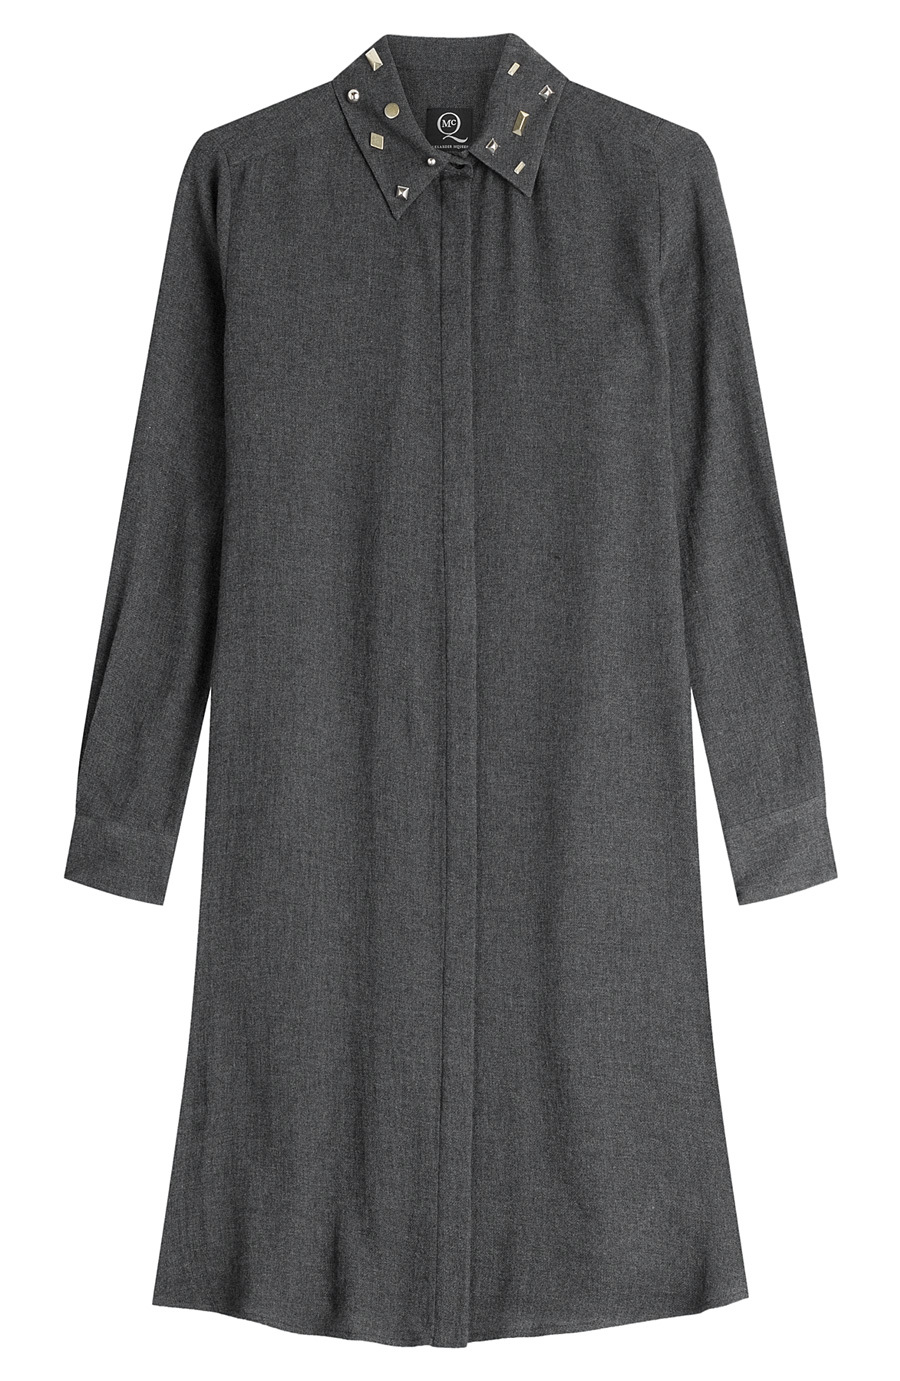 Shirt Dress With Wool Grey - style: shirt; neckline: shirt collar/peter pan/zip with opening; pattern: plain; predominant colour: denim; occasions: casual, creative work; length: just above the knee; fit: straight cut; fibres: wool - mix; sleeve length: long sleeve; sleeve style: standard; pattern type: fabric; texture group: woven light midweight; embellishment: studs; season: a/w 2015